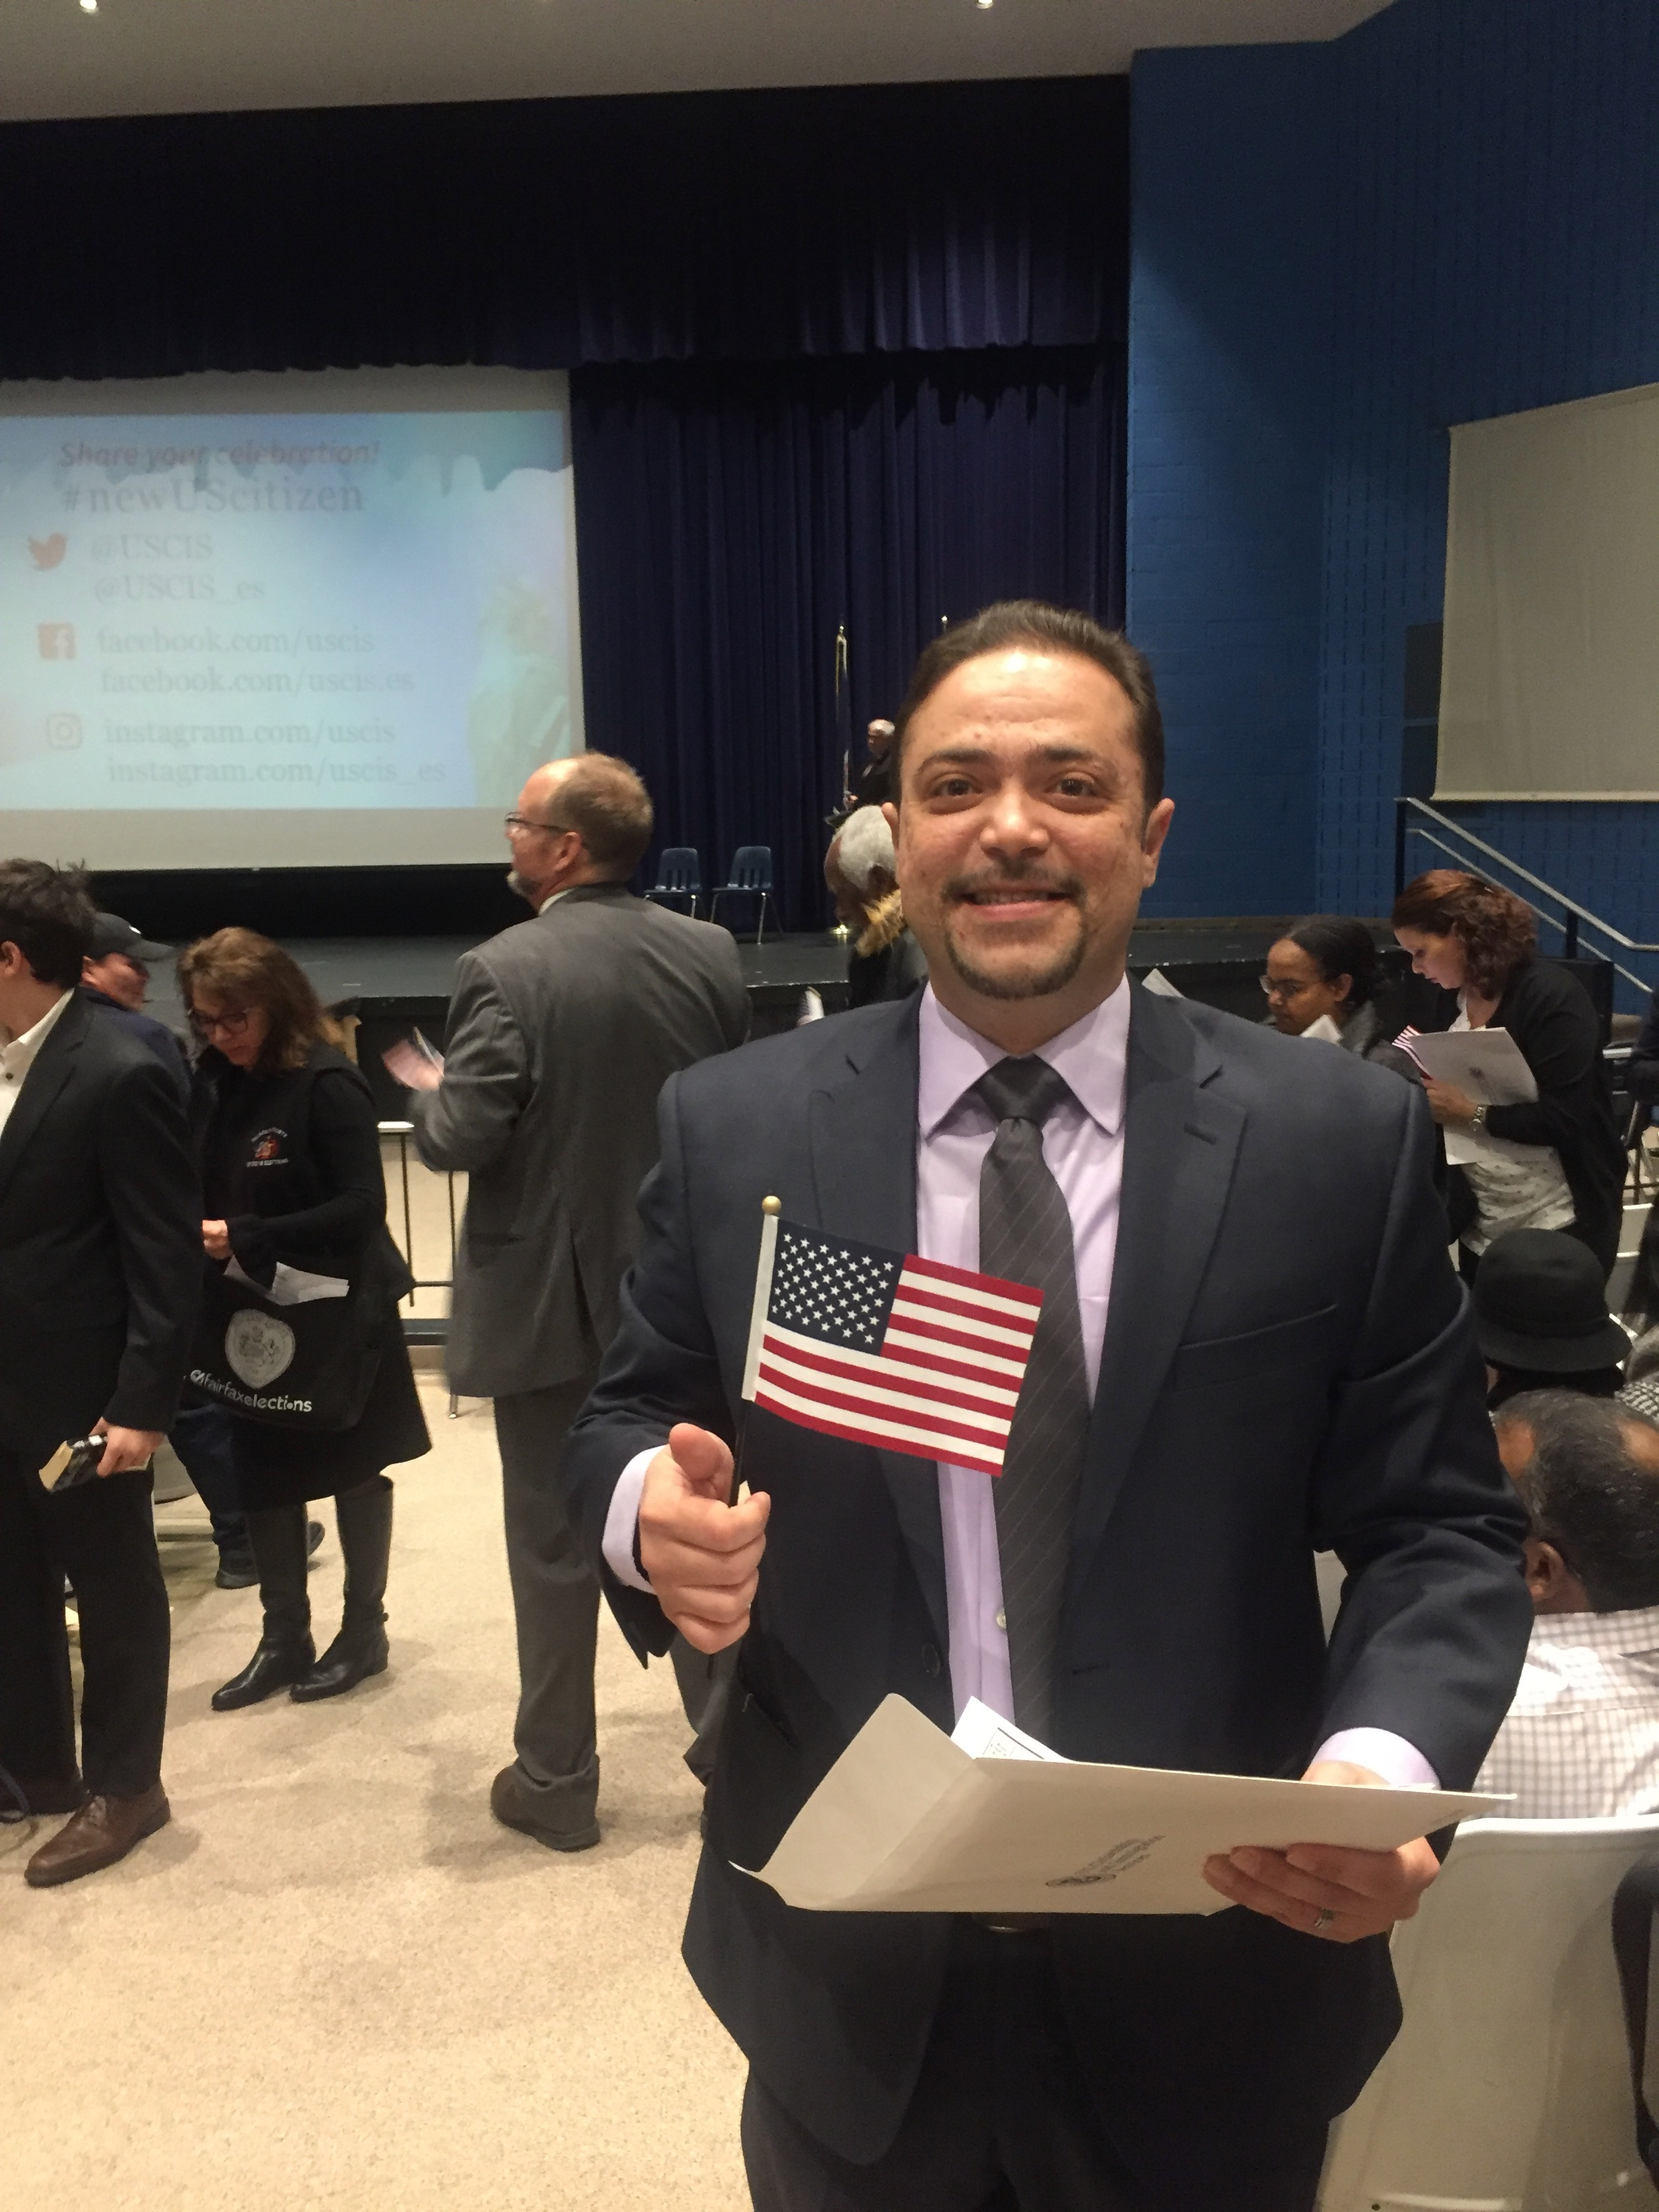 Naturalized citizen